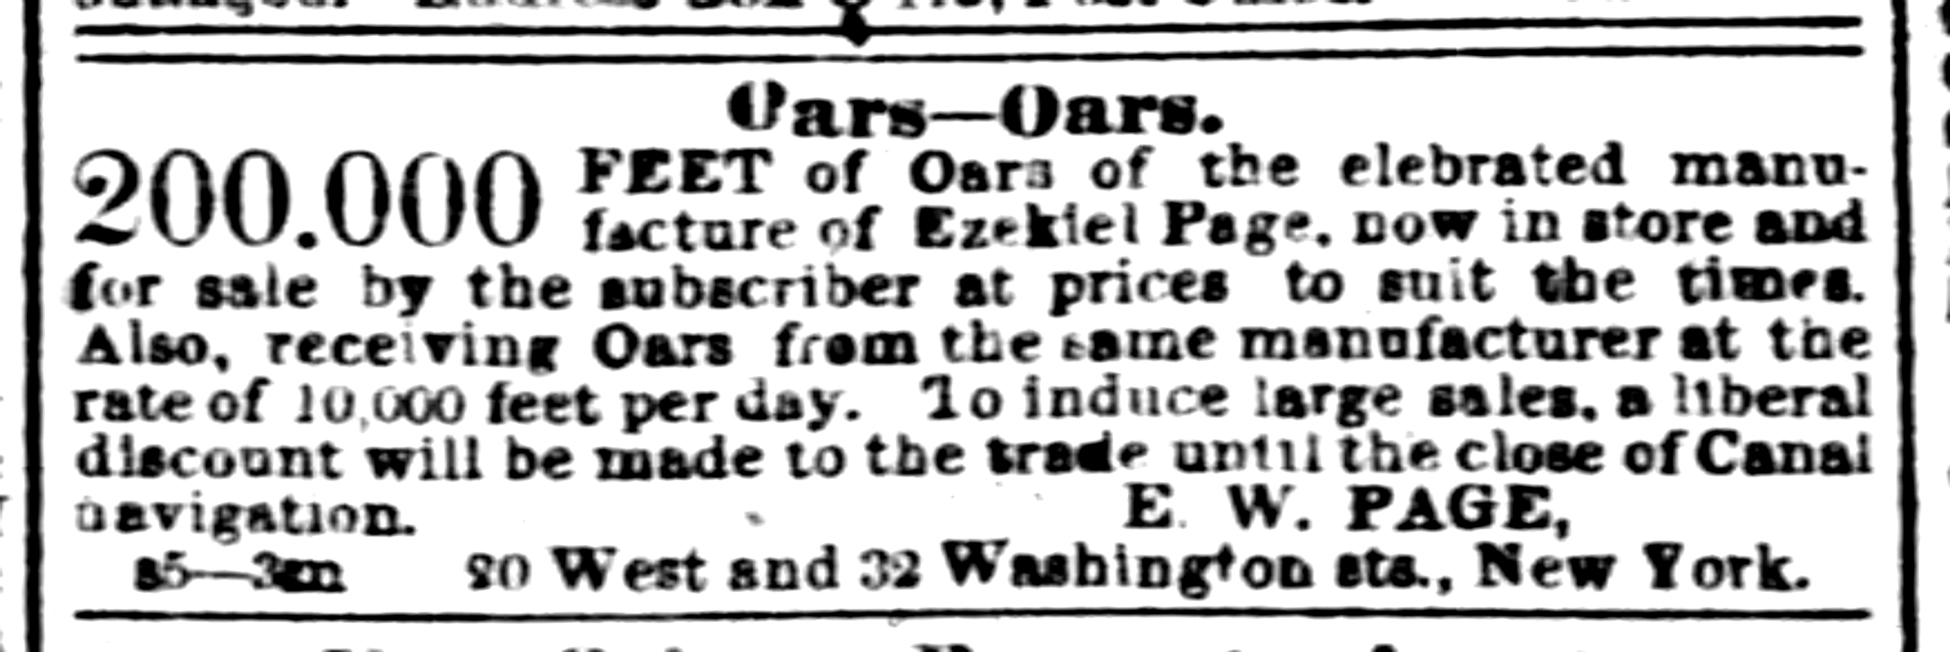 1855-09-12 The Times Picayune (New Orleans, LA) Wed Sep 12, 1855, p3